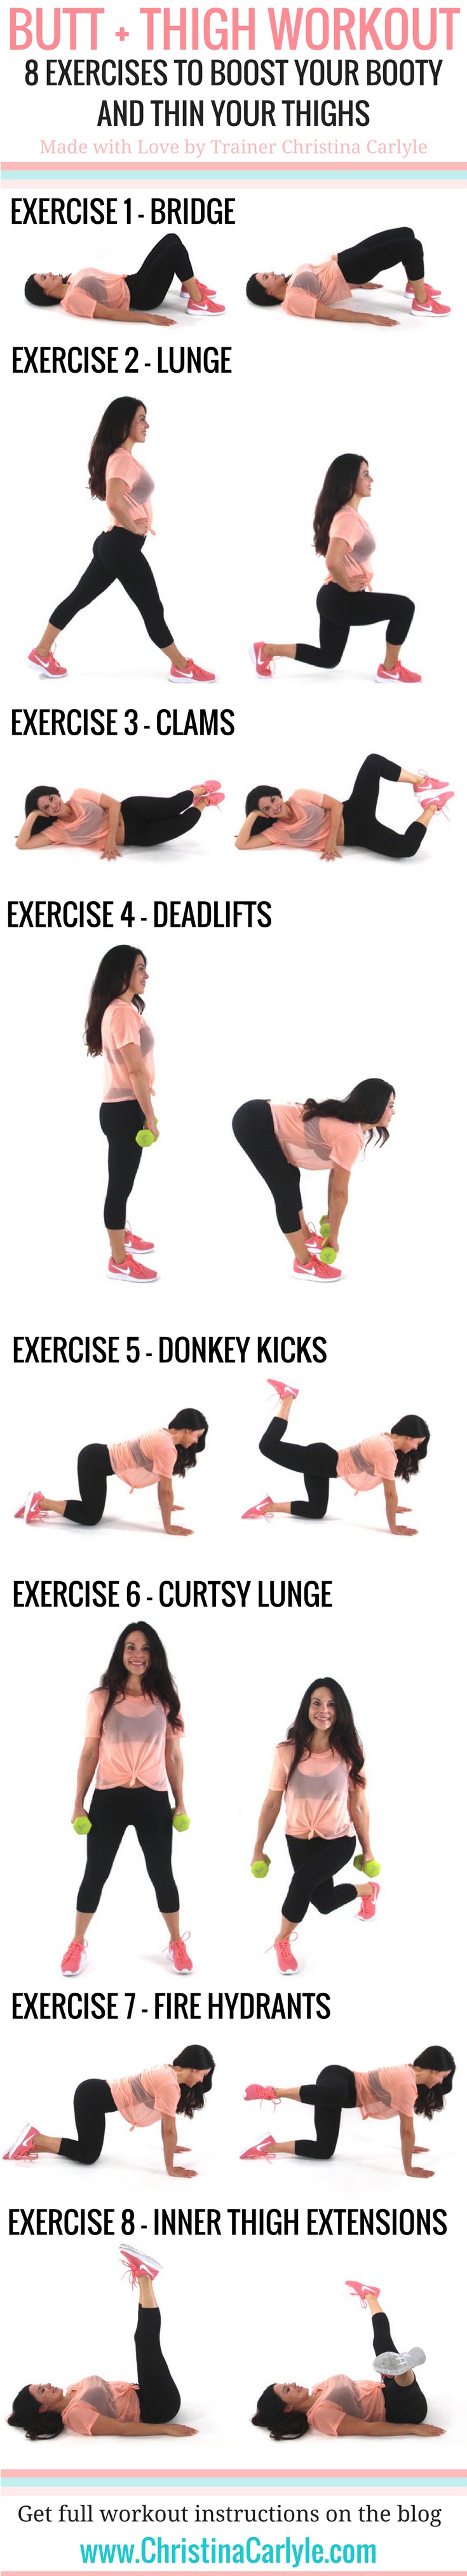 Butt Thighs Workout 99